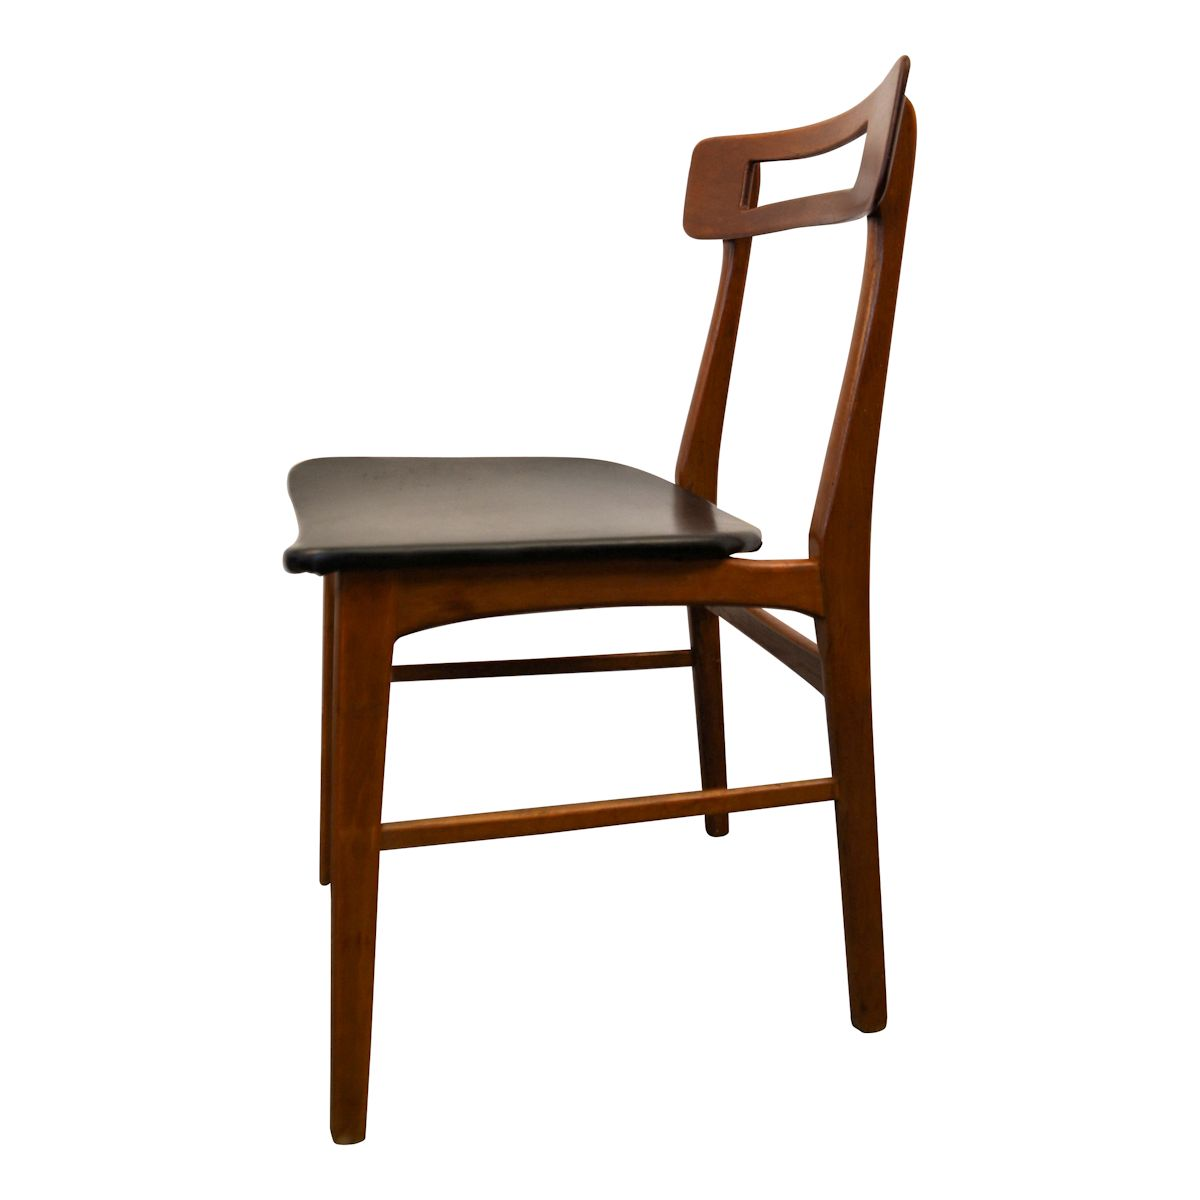 Vintage teak danish modern dining chairs vintage vibes for Contemporary designer dining chairs